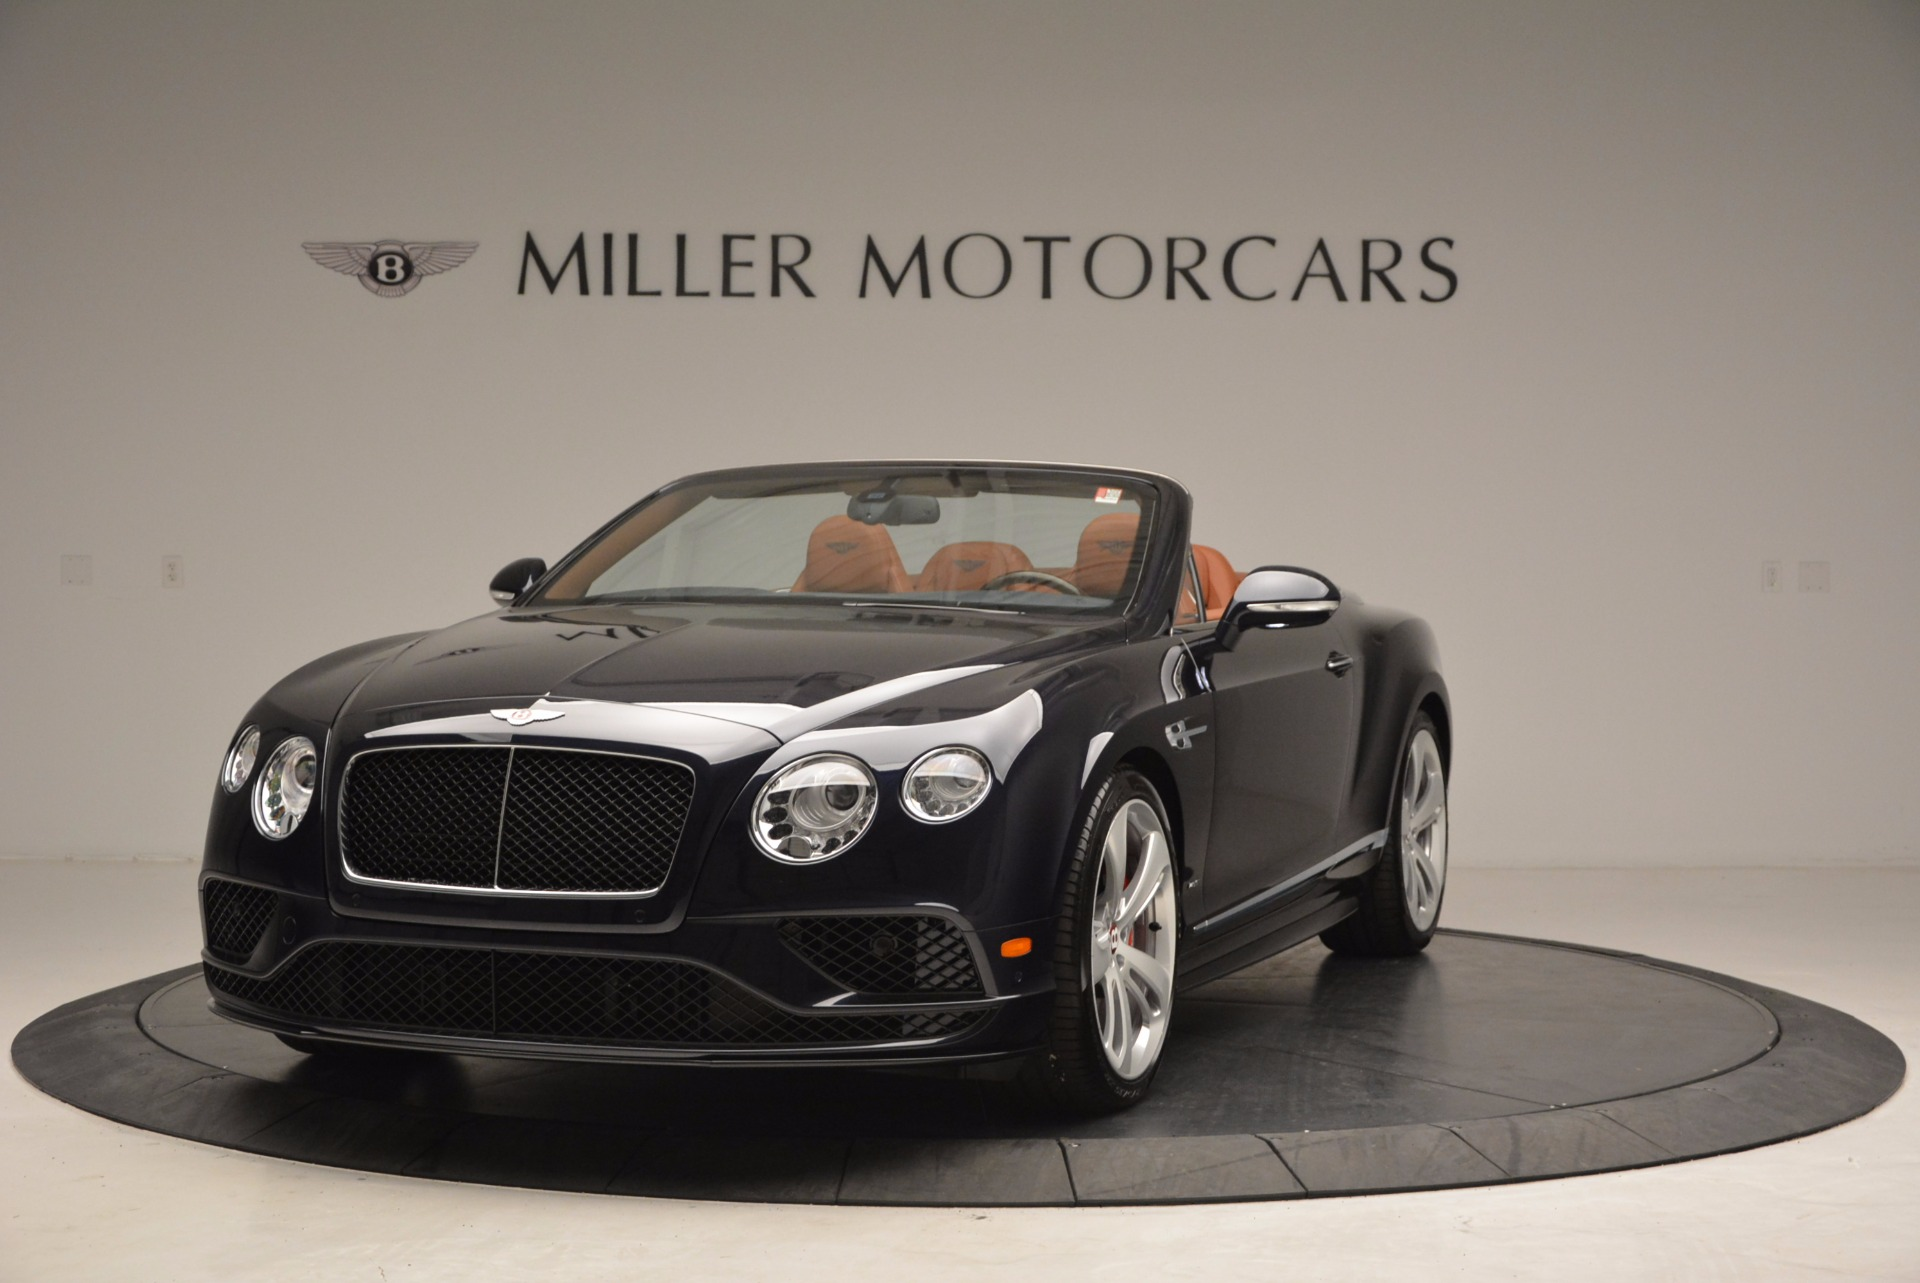 New 2017 Bentley Continental GT V8 S For Sale In Westport, CT 731_main